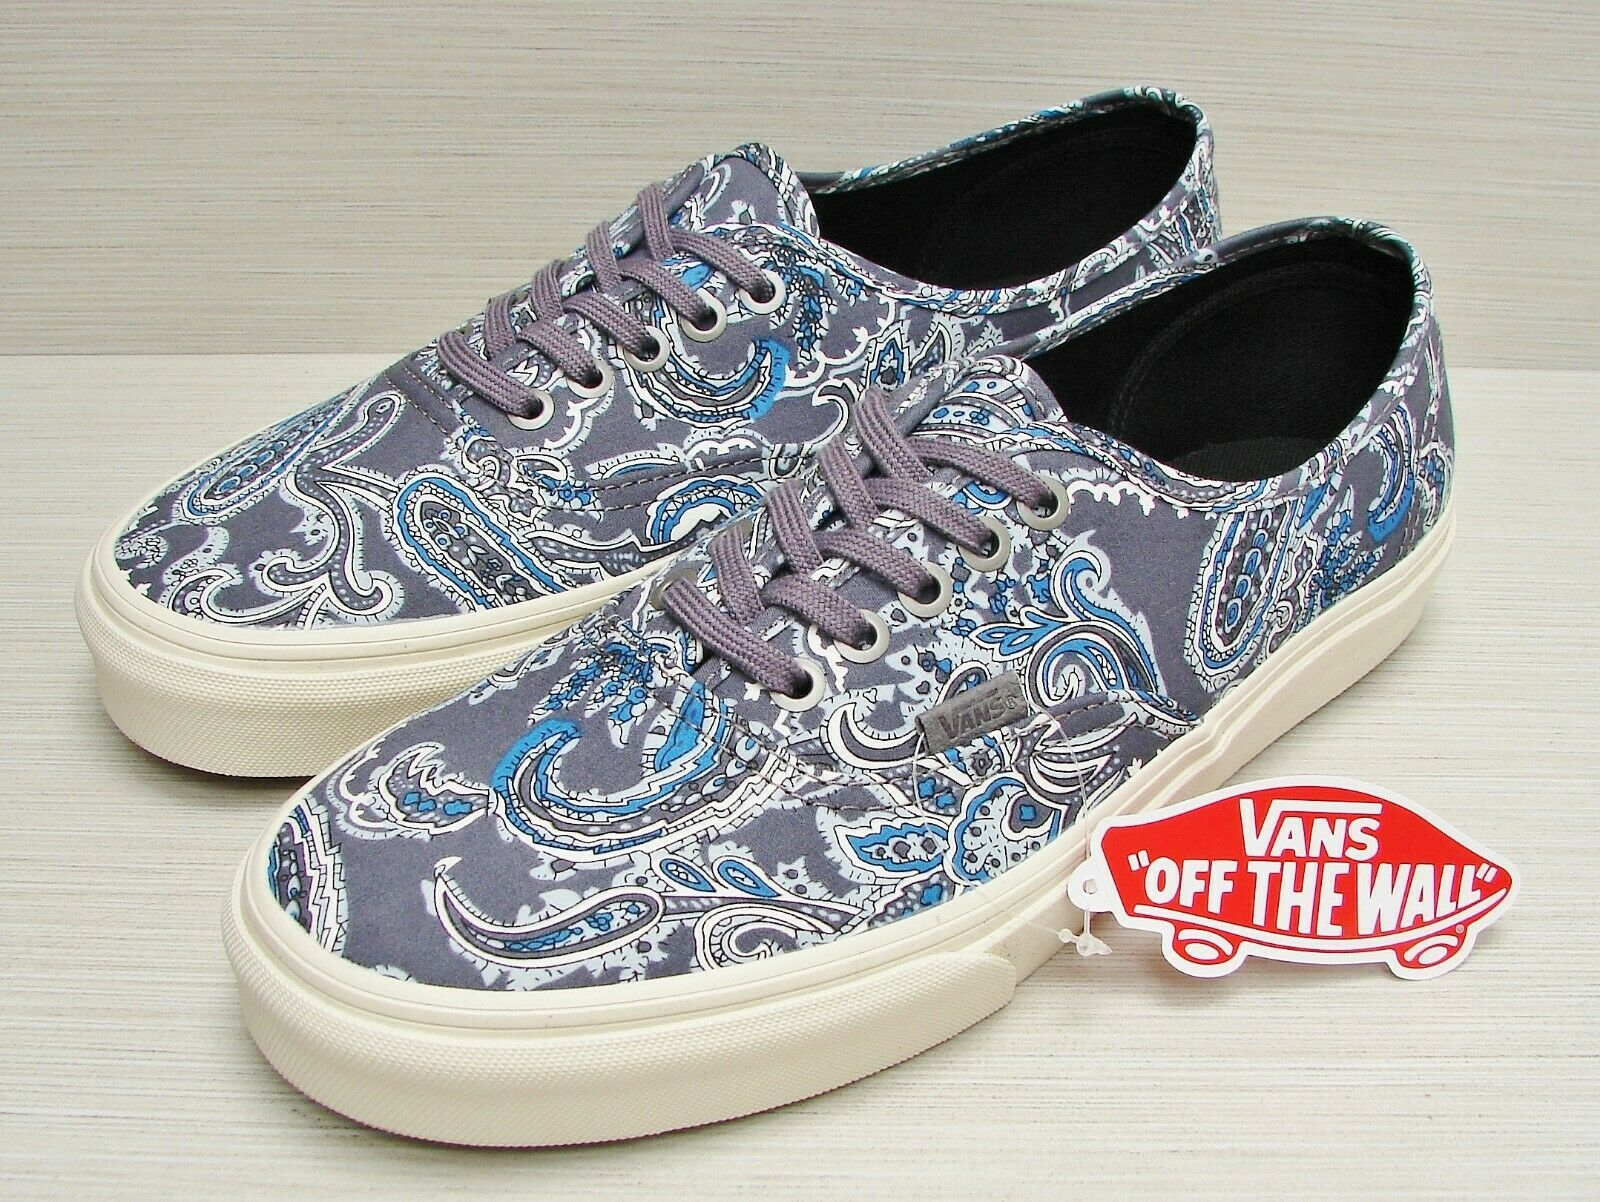 9d1010587f Vans Authentic CA (Paisley) Charcoal VN-000ZUII2T Men s Size 13 ...